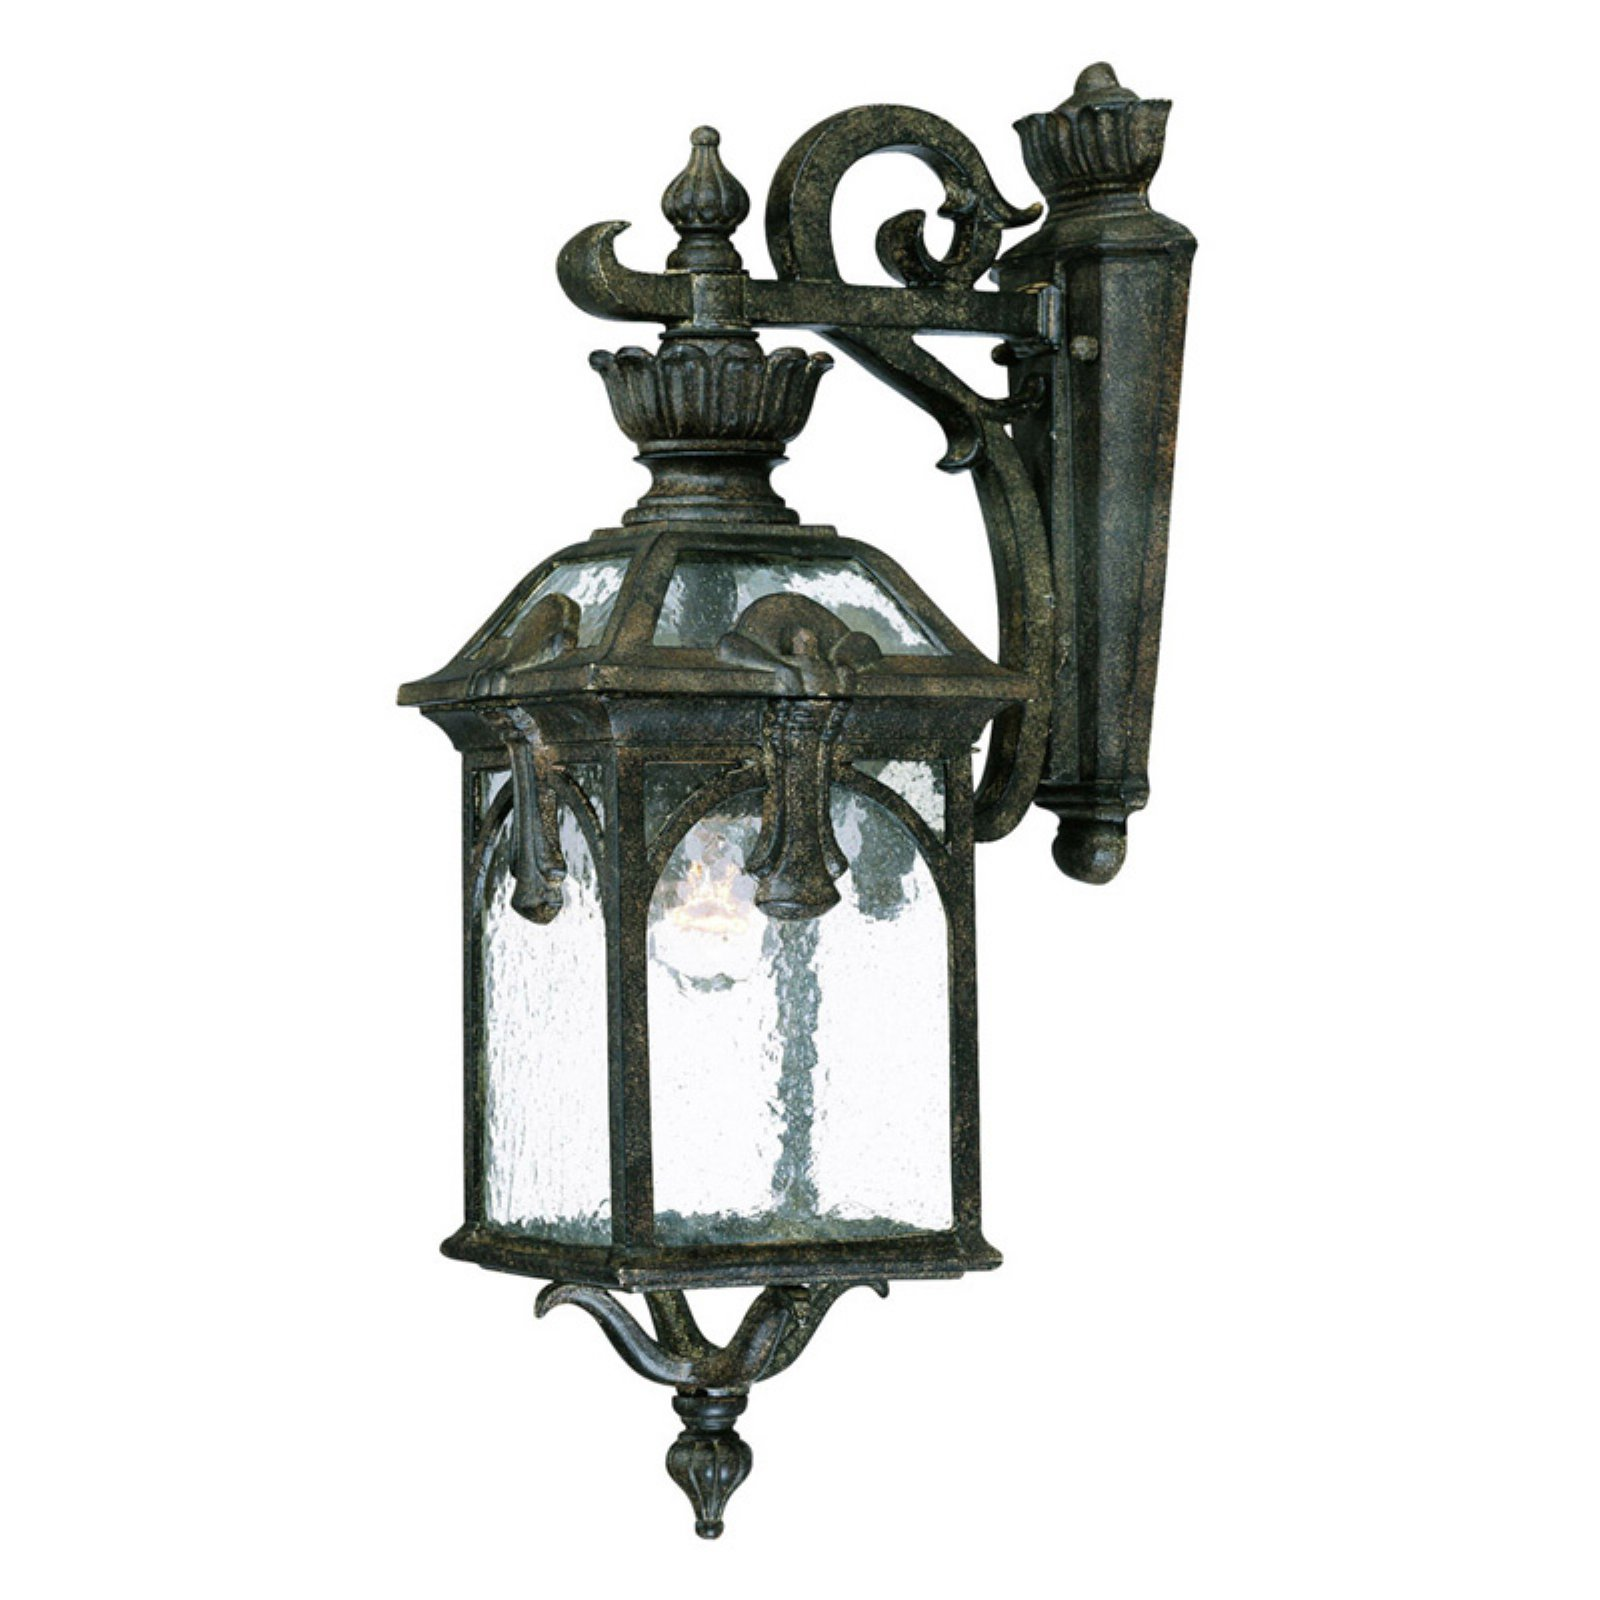 Acclaim Lighting Belmont Outdoor Wall Mount Light Fixture